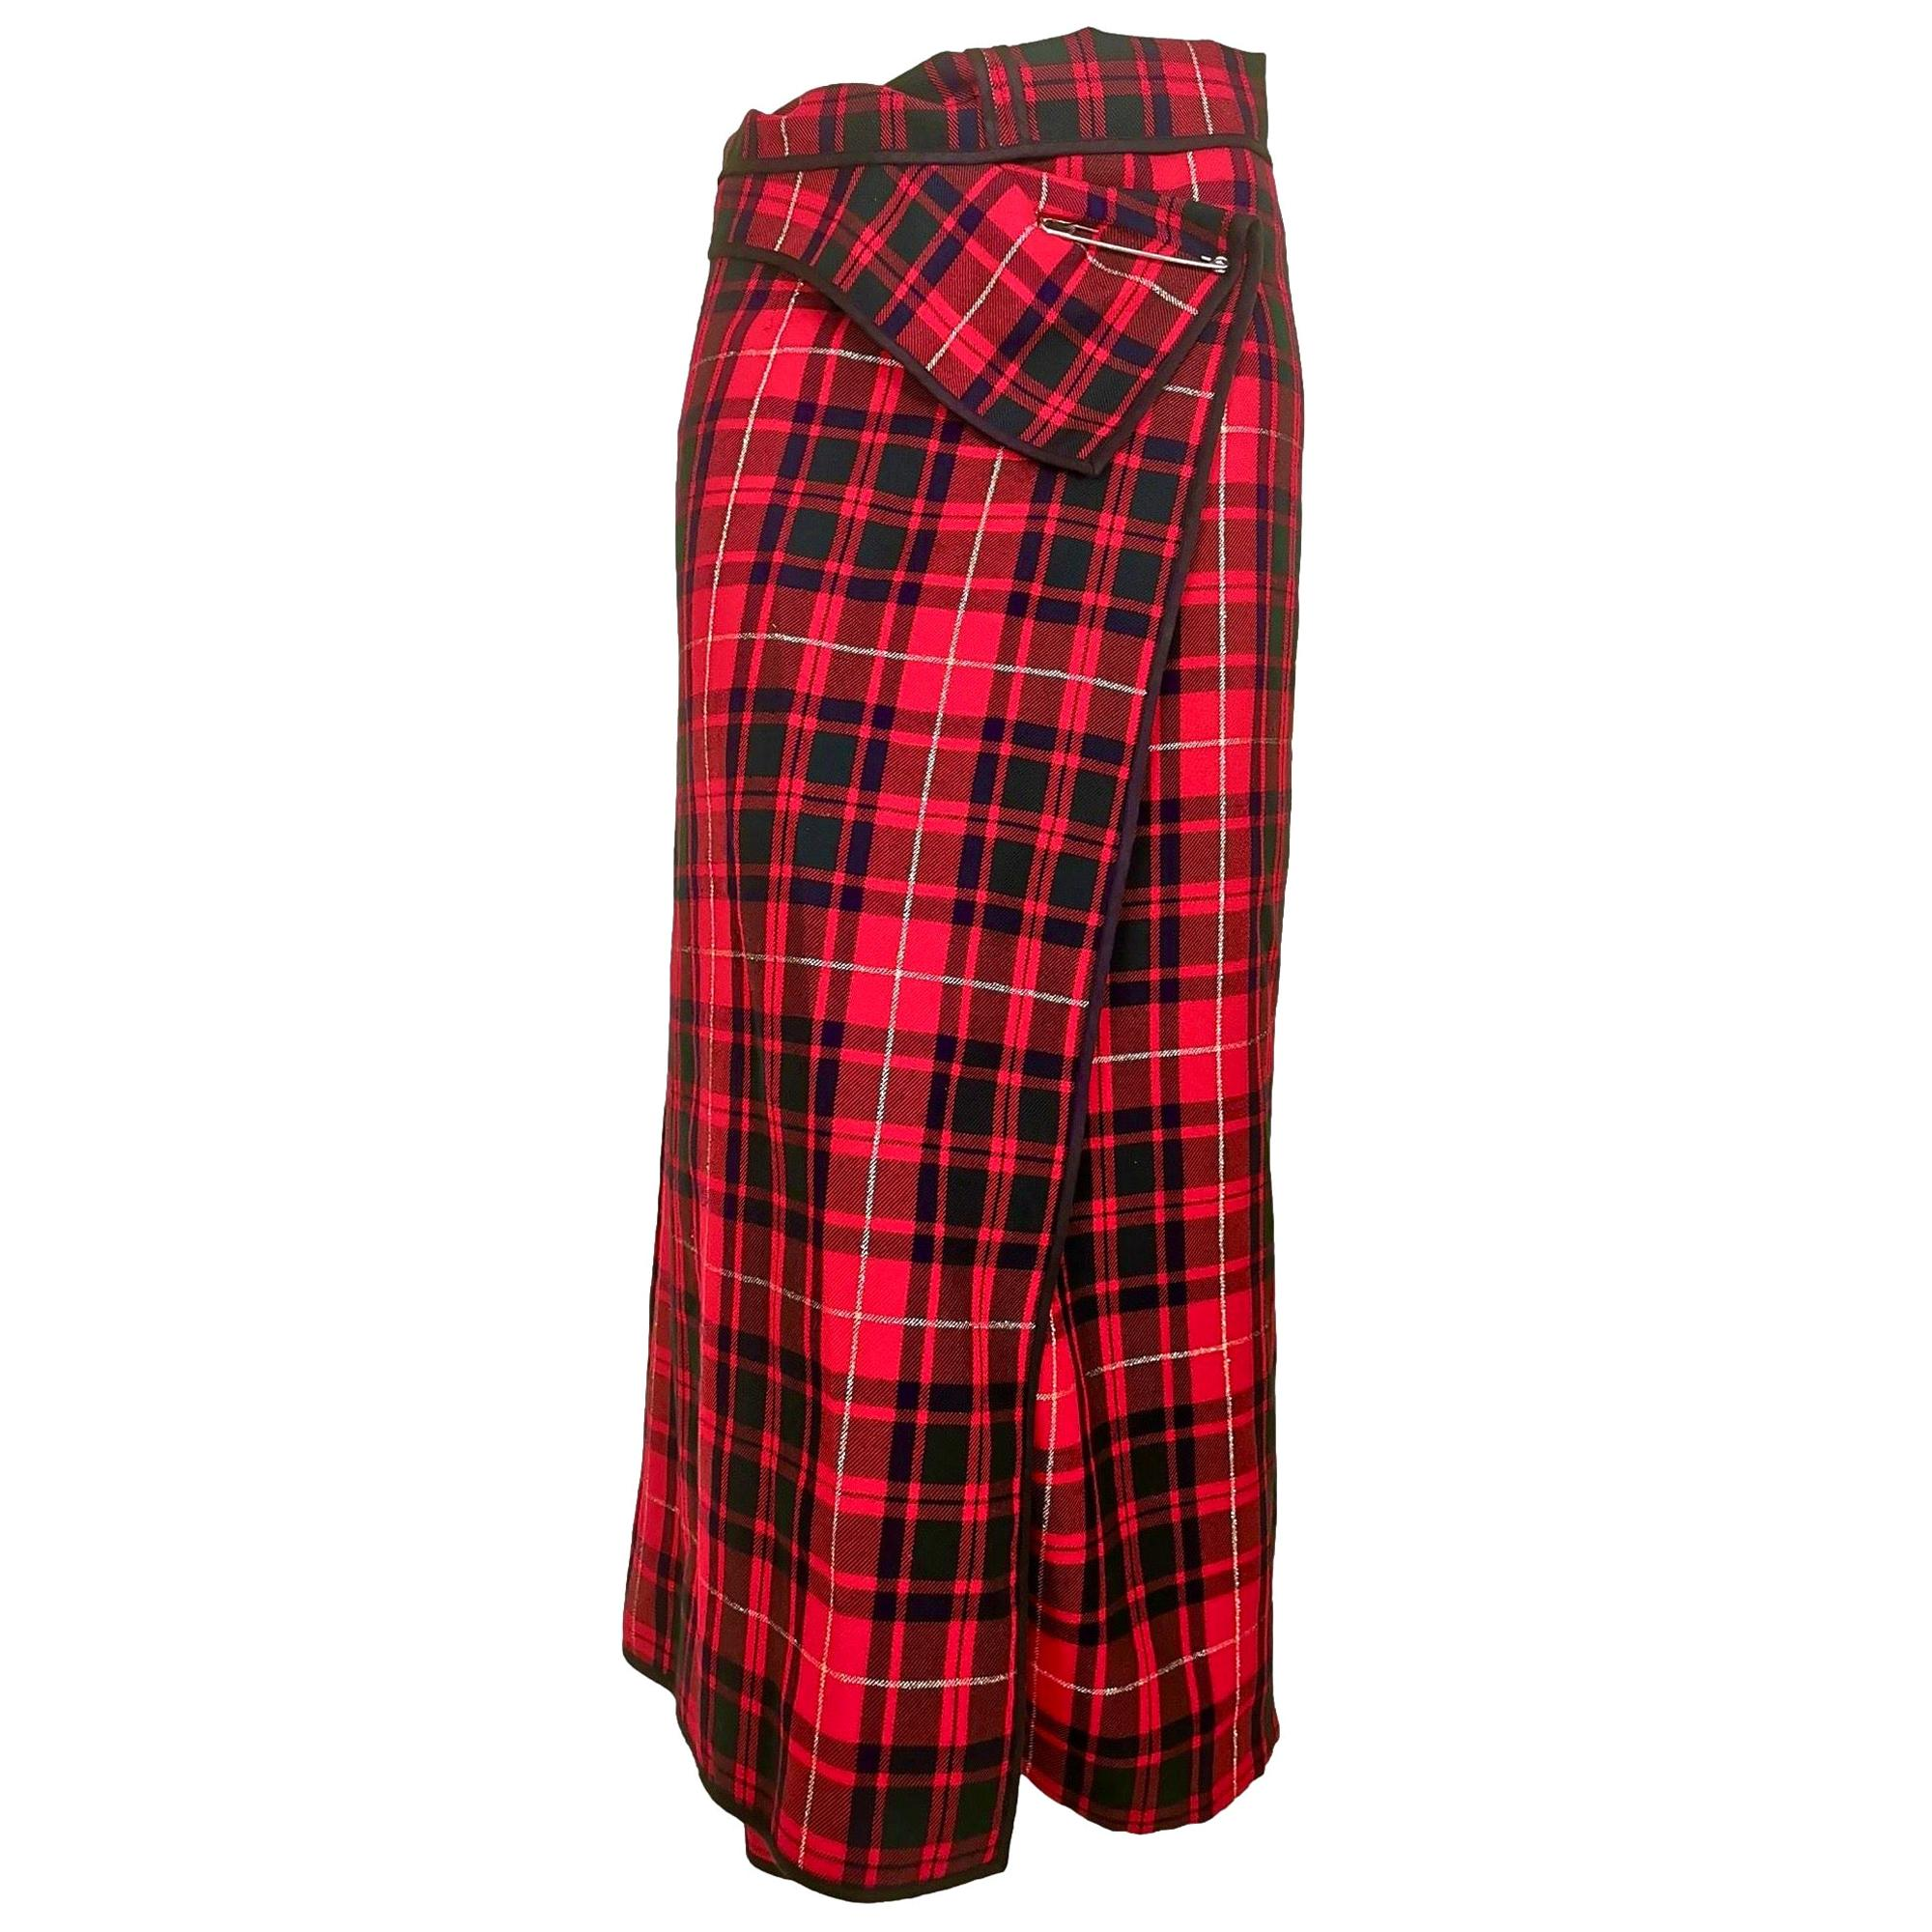 Comme des Garcons AD 1996 Red Tartan with Gold Thread Wrap Around Trouser/Skirt